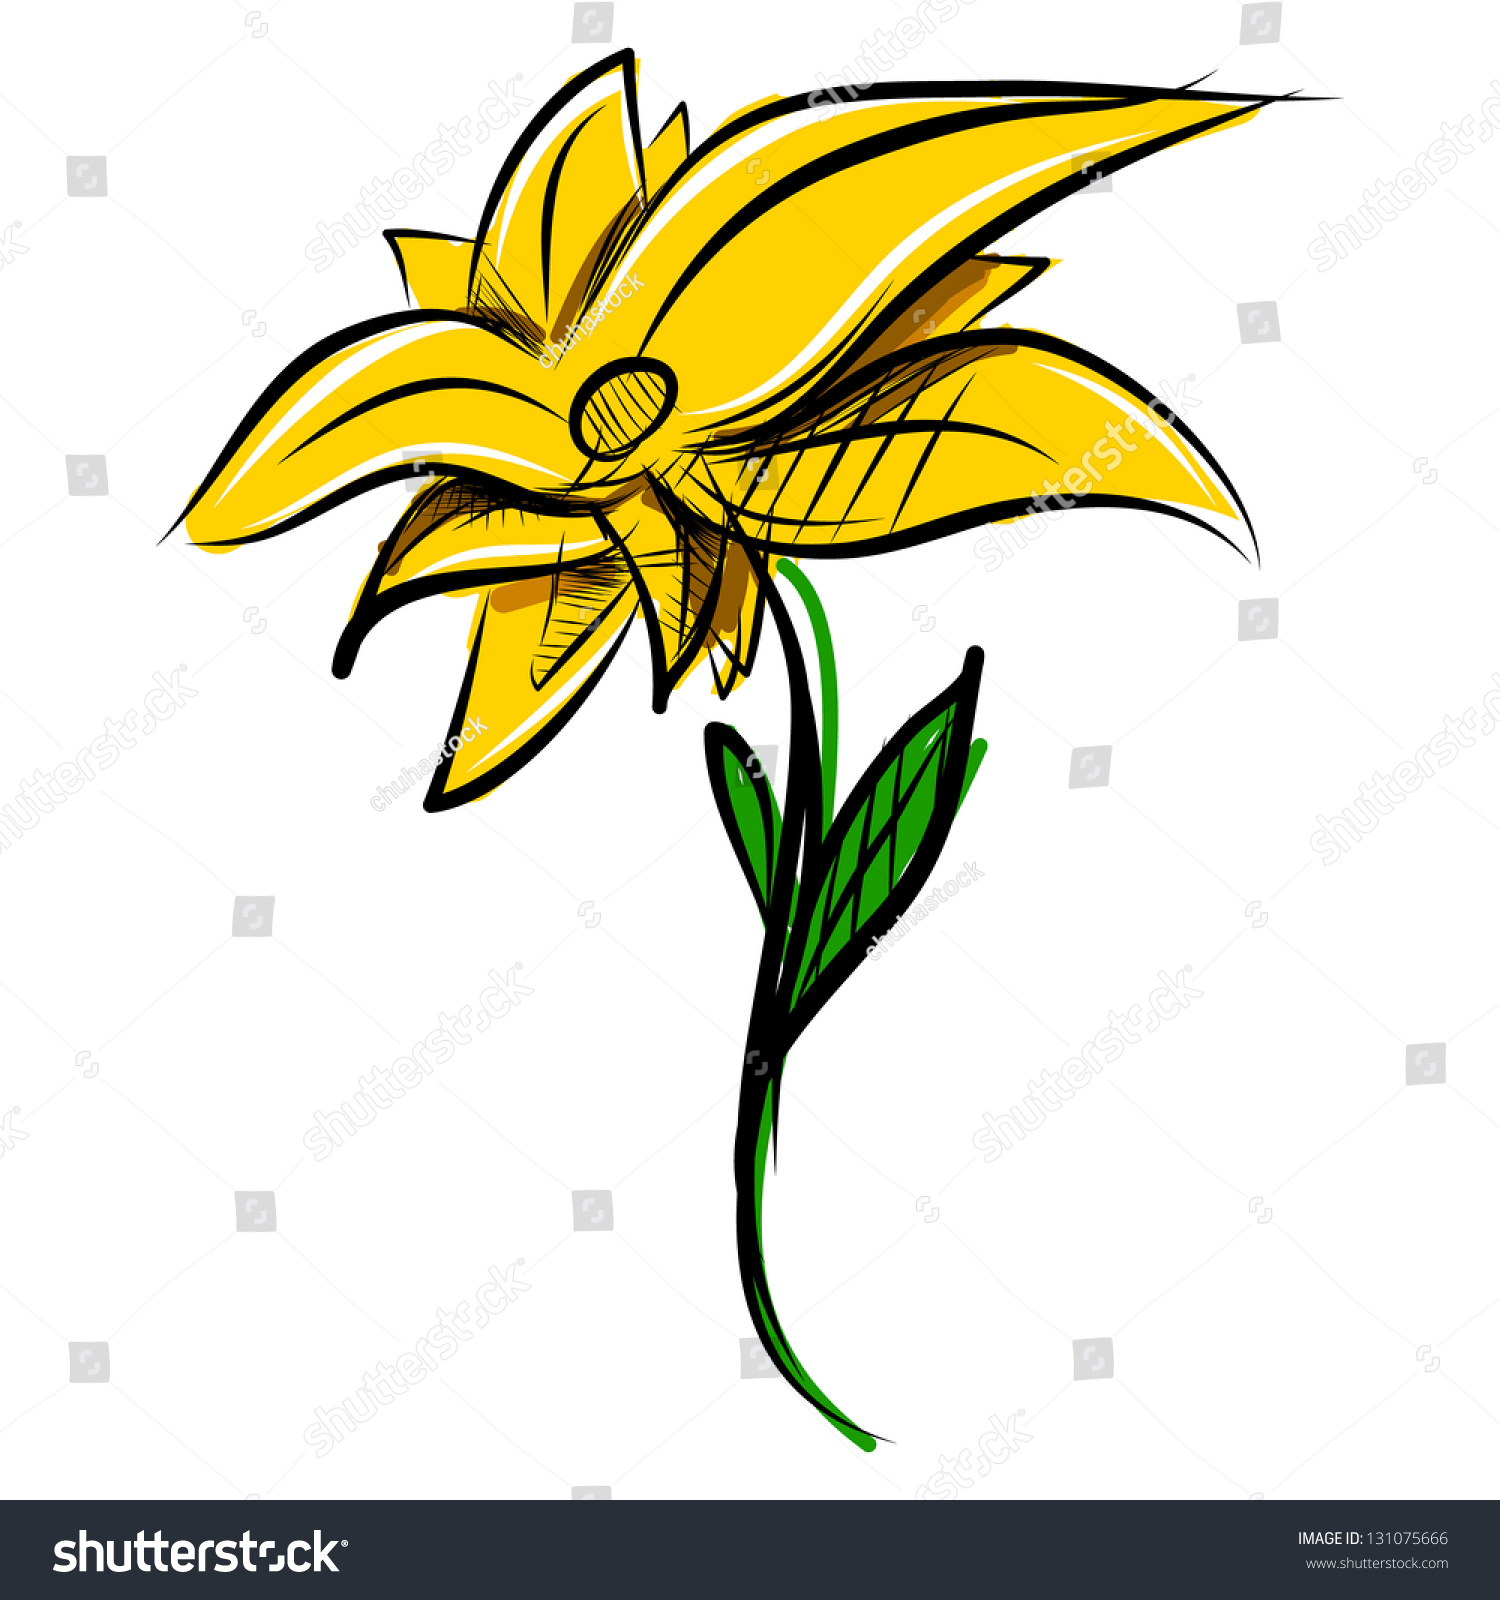 Yellow Flower Hand Drawing Sketch Vector Illustration Ez Canvas